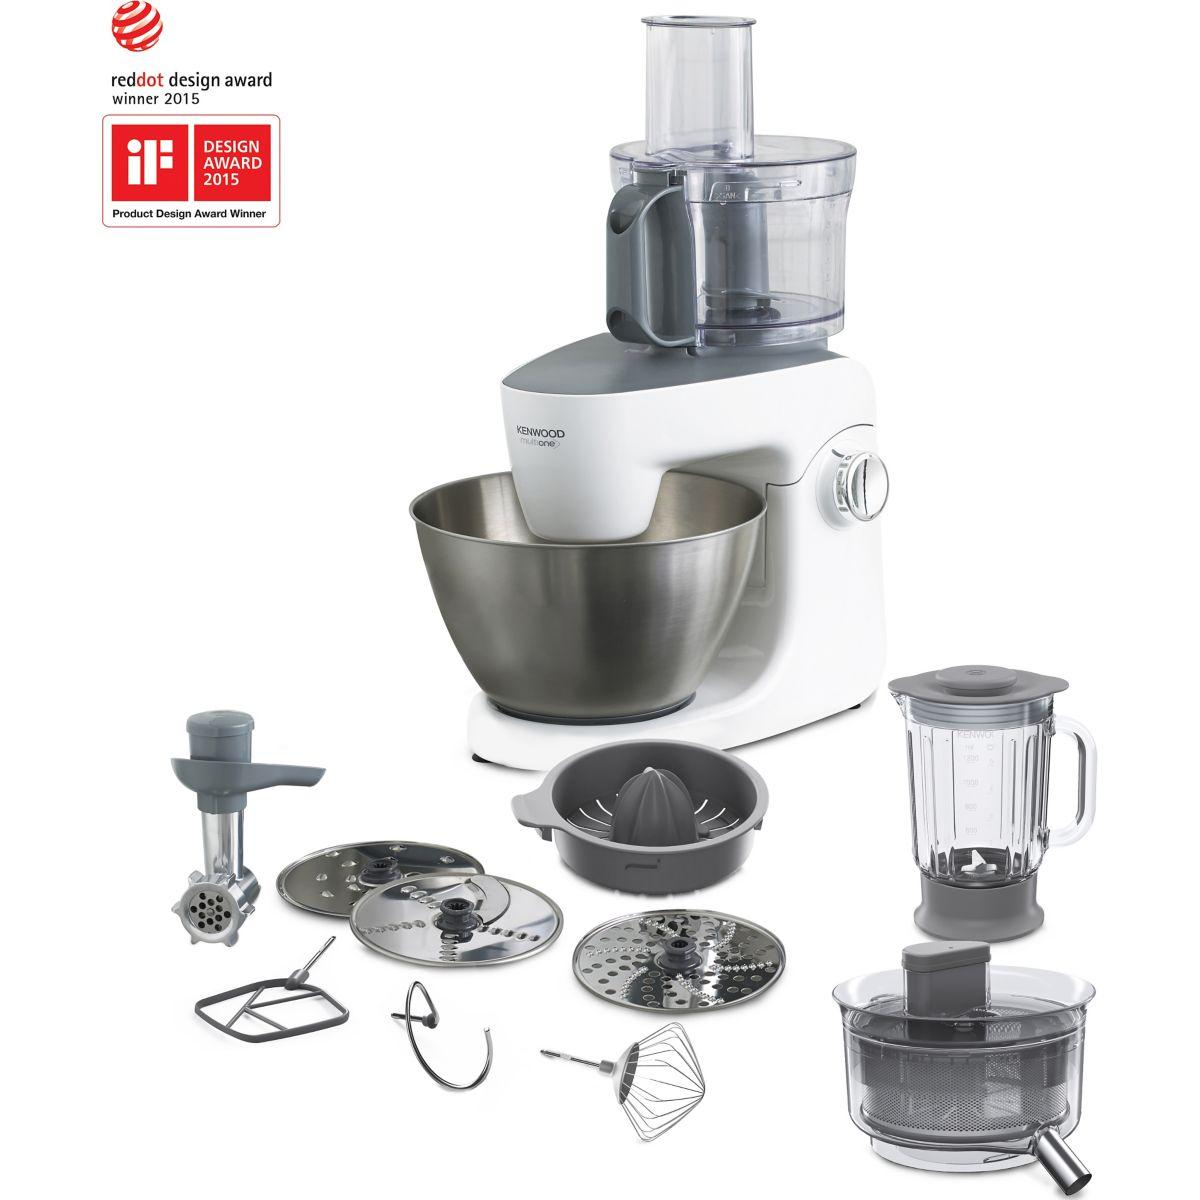 Robot kenwood khh326wh multi one - 15% de remise immédiate avec le code : top15 (photo)